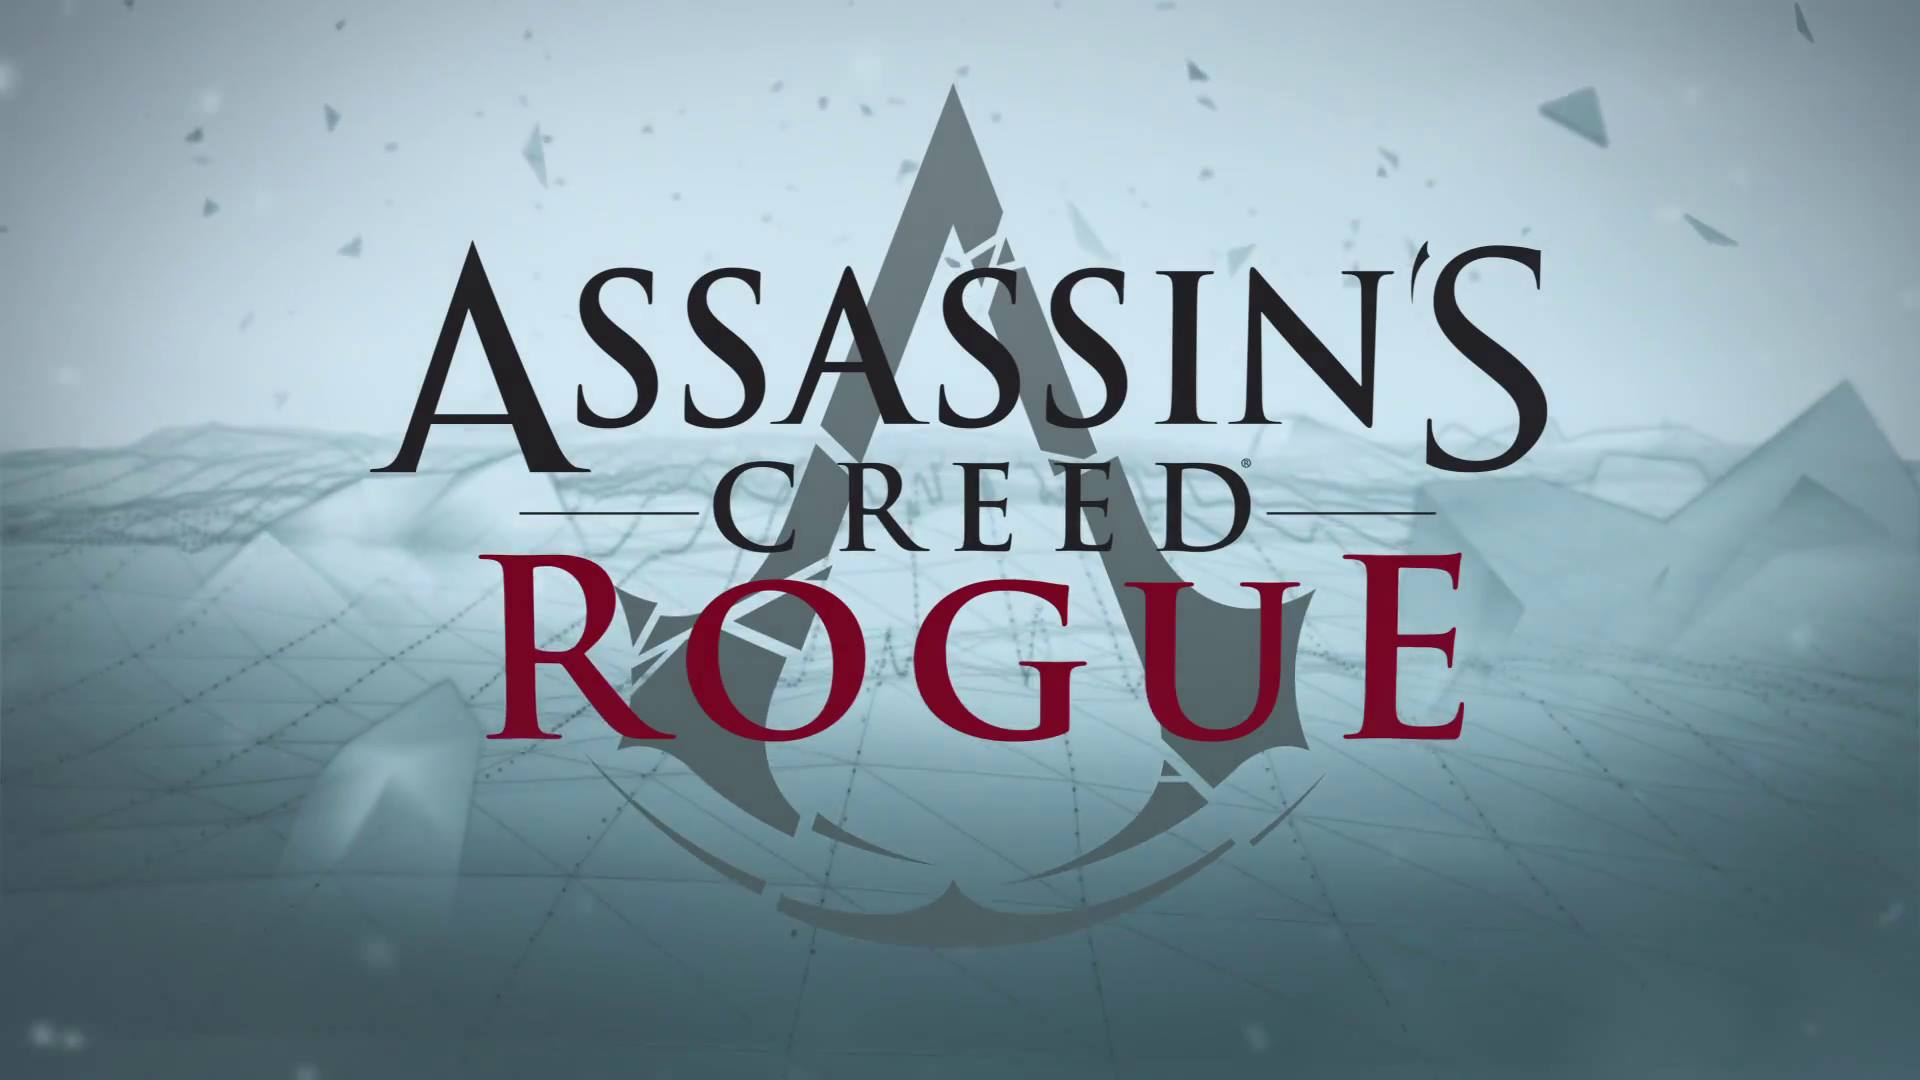 Assassin's Creed Rogue PC Release Date Announced